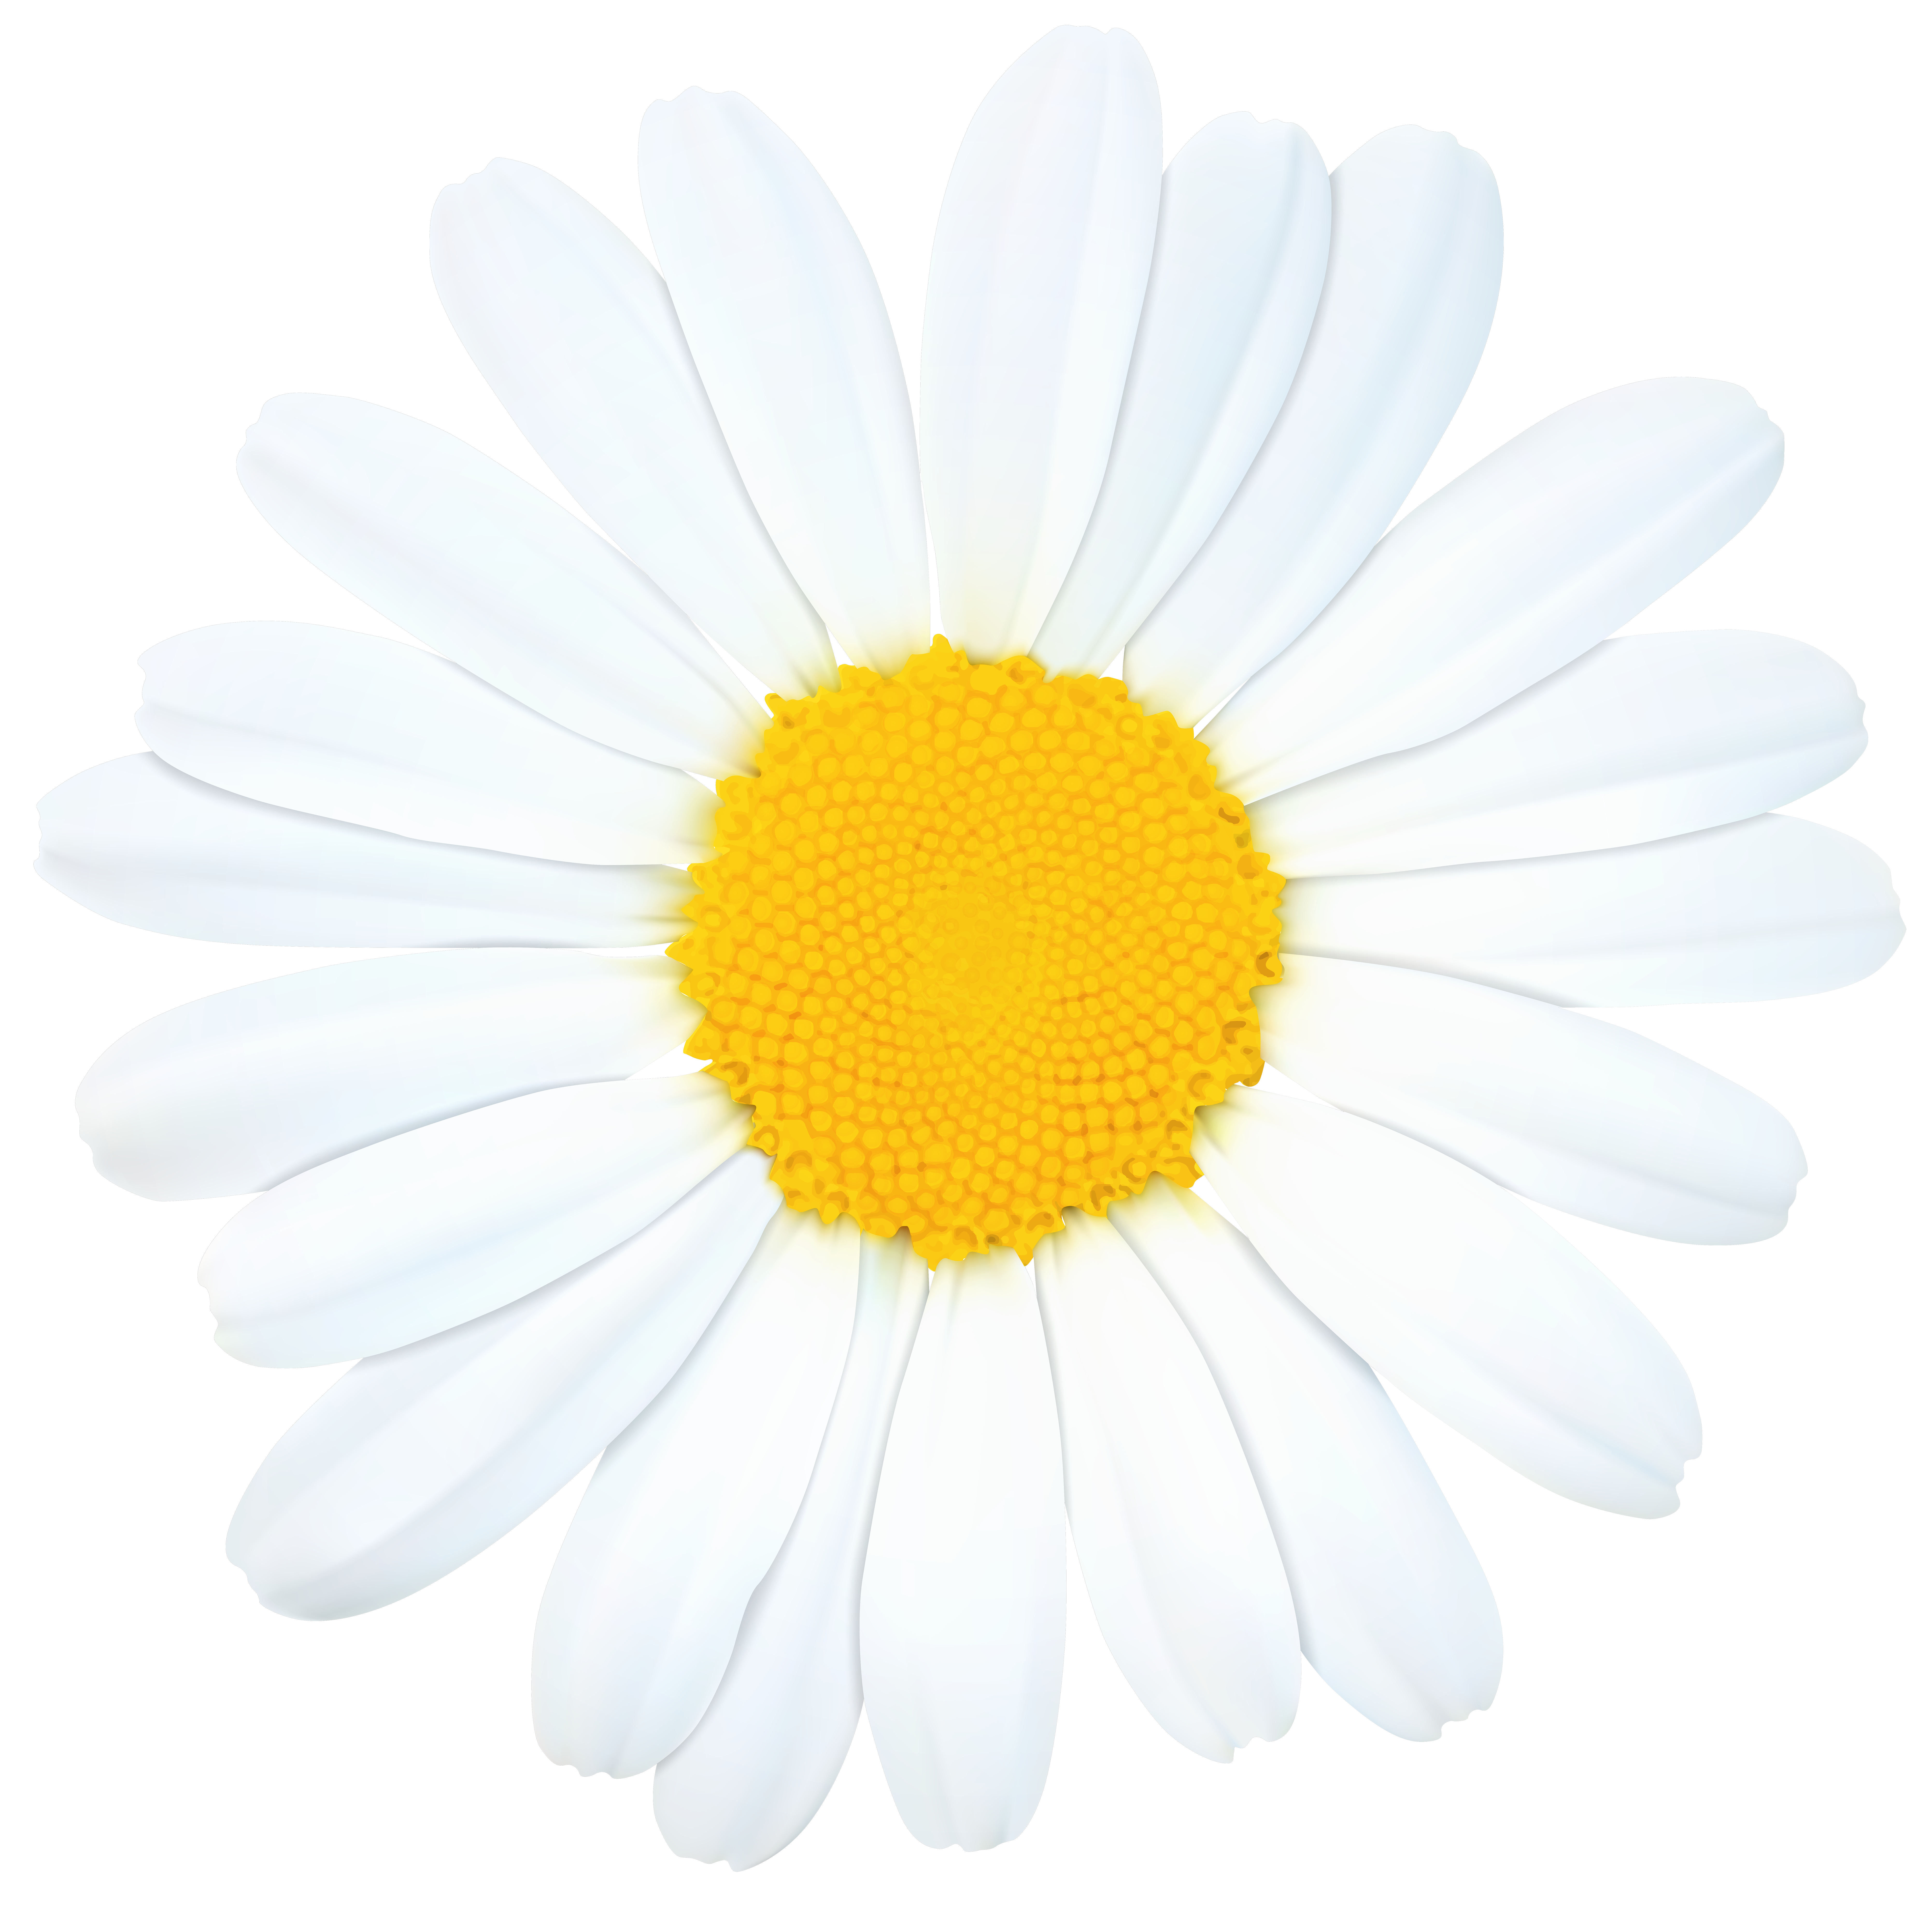 Png clip art image. Daisy clipart